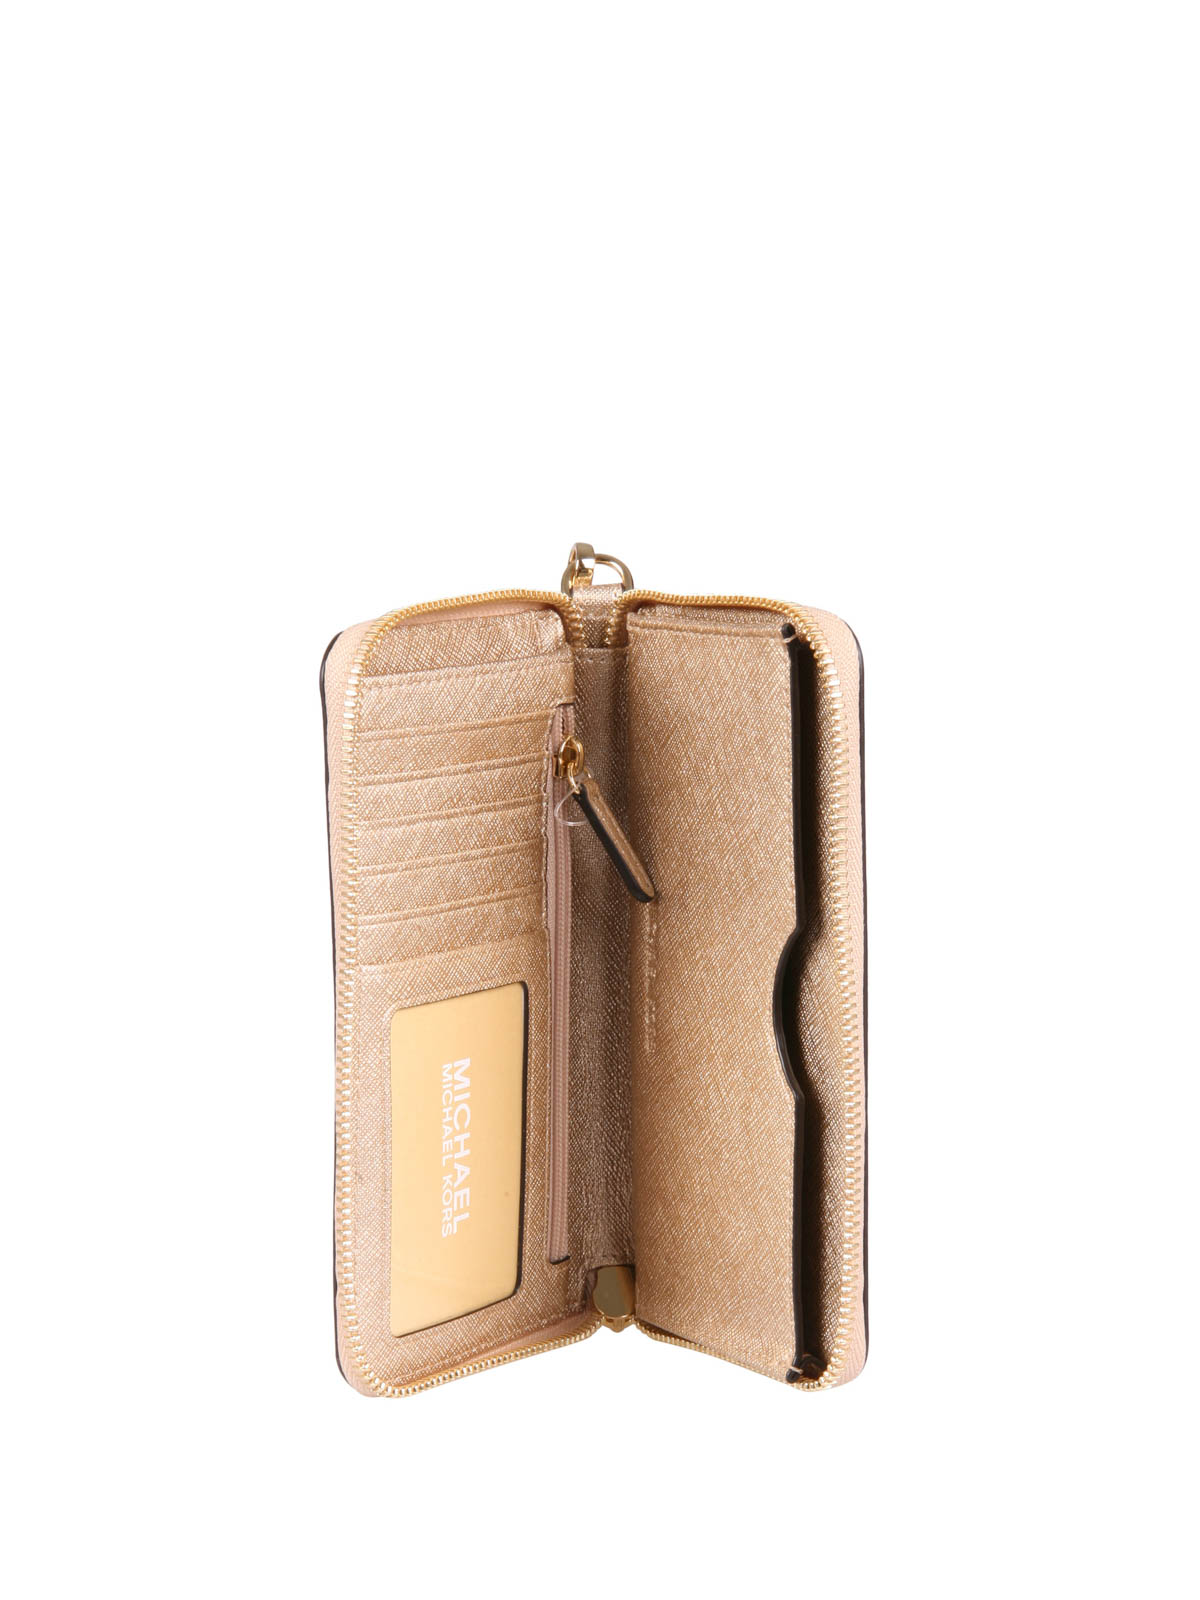 Jet Set Travel Smartphone Wallet By Michael Kors Wallets Purses - Michael kors porte monnaie